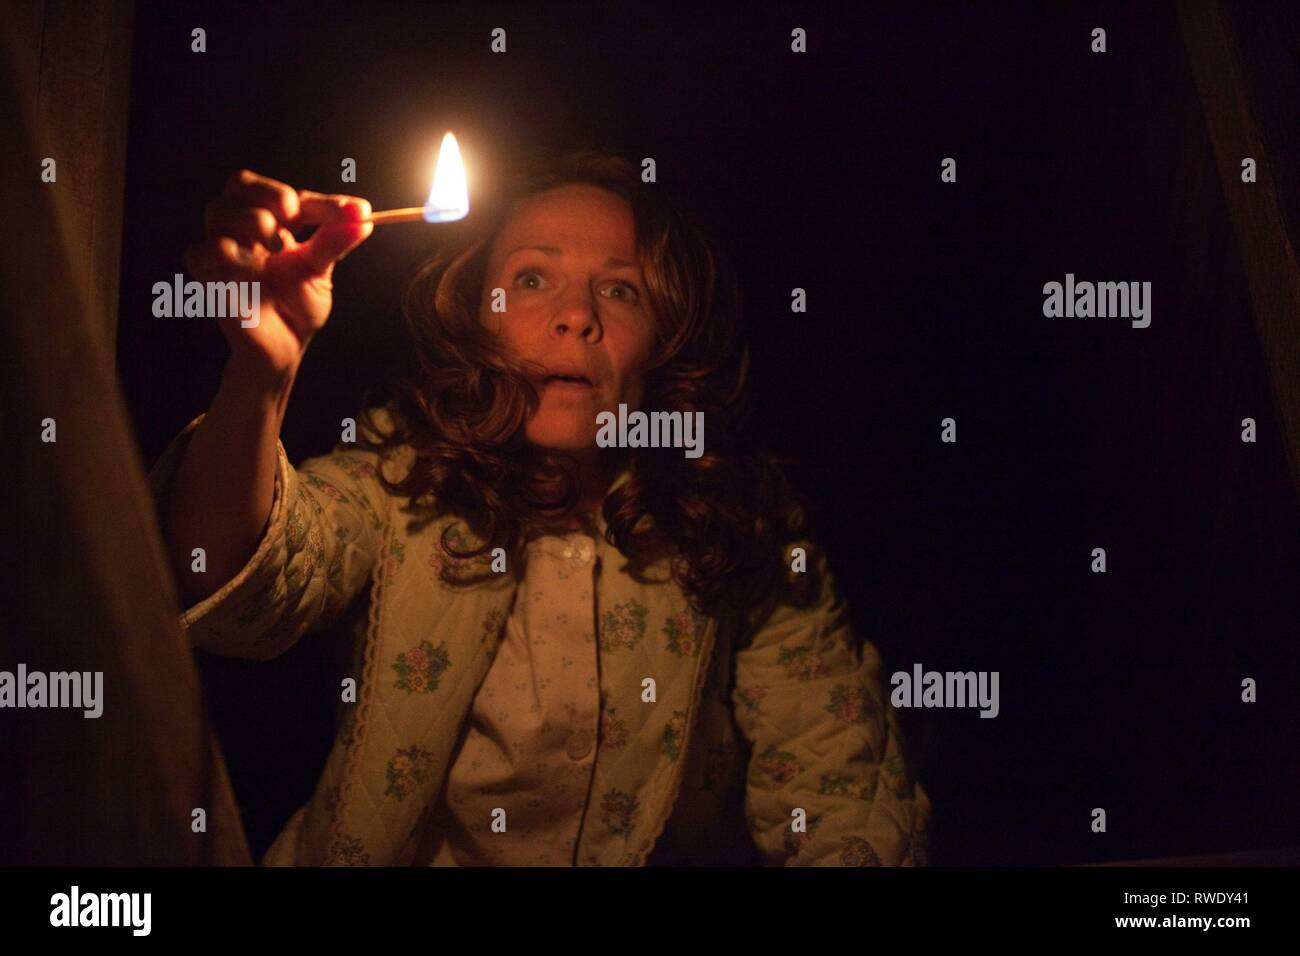 LILI TAYLOR, THE CONJURING, 2013 - Stock Image